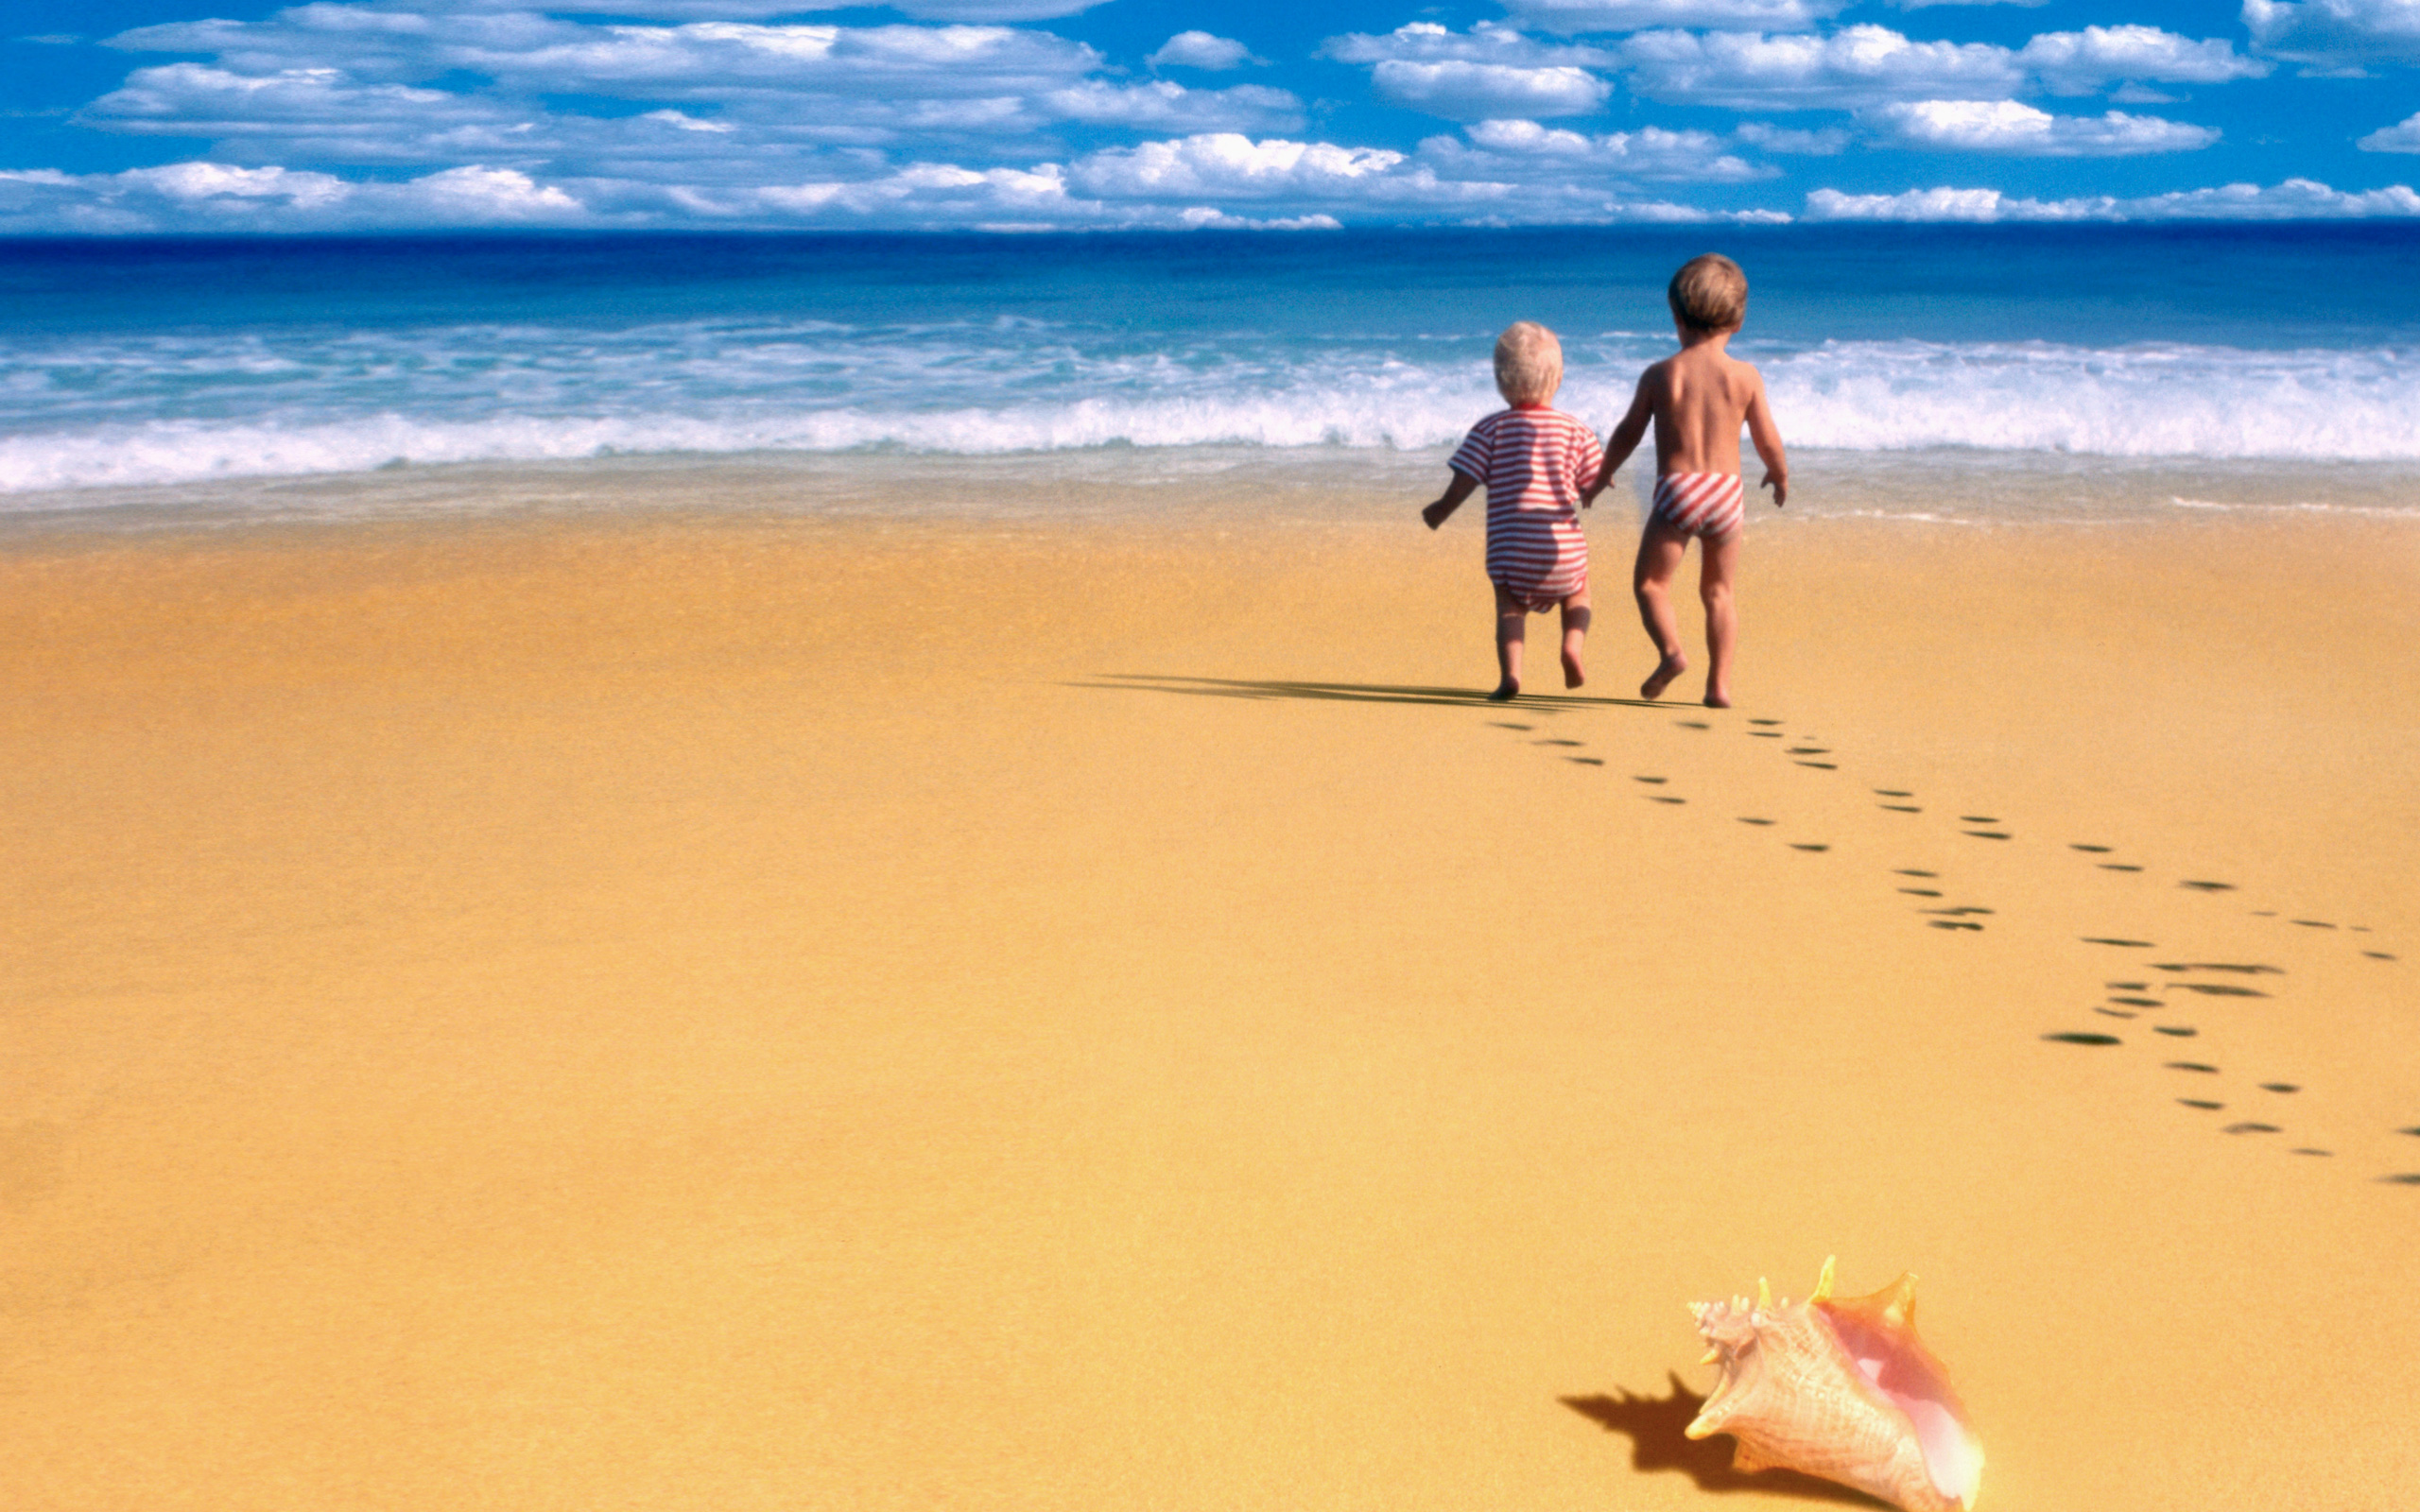 Download Beach Babies Wallpapers Gallery The Most Beautiful Black Baby In The World